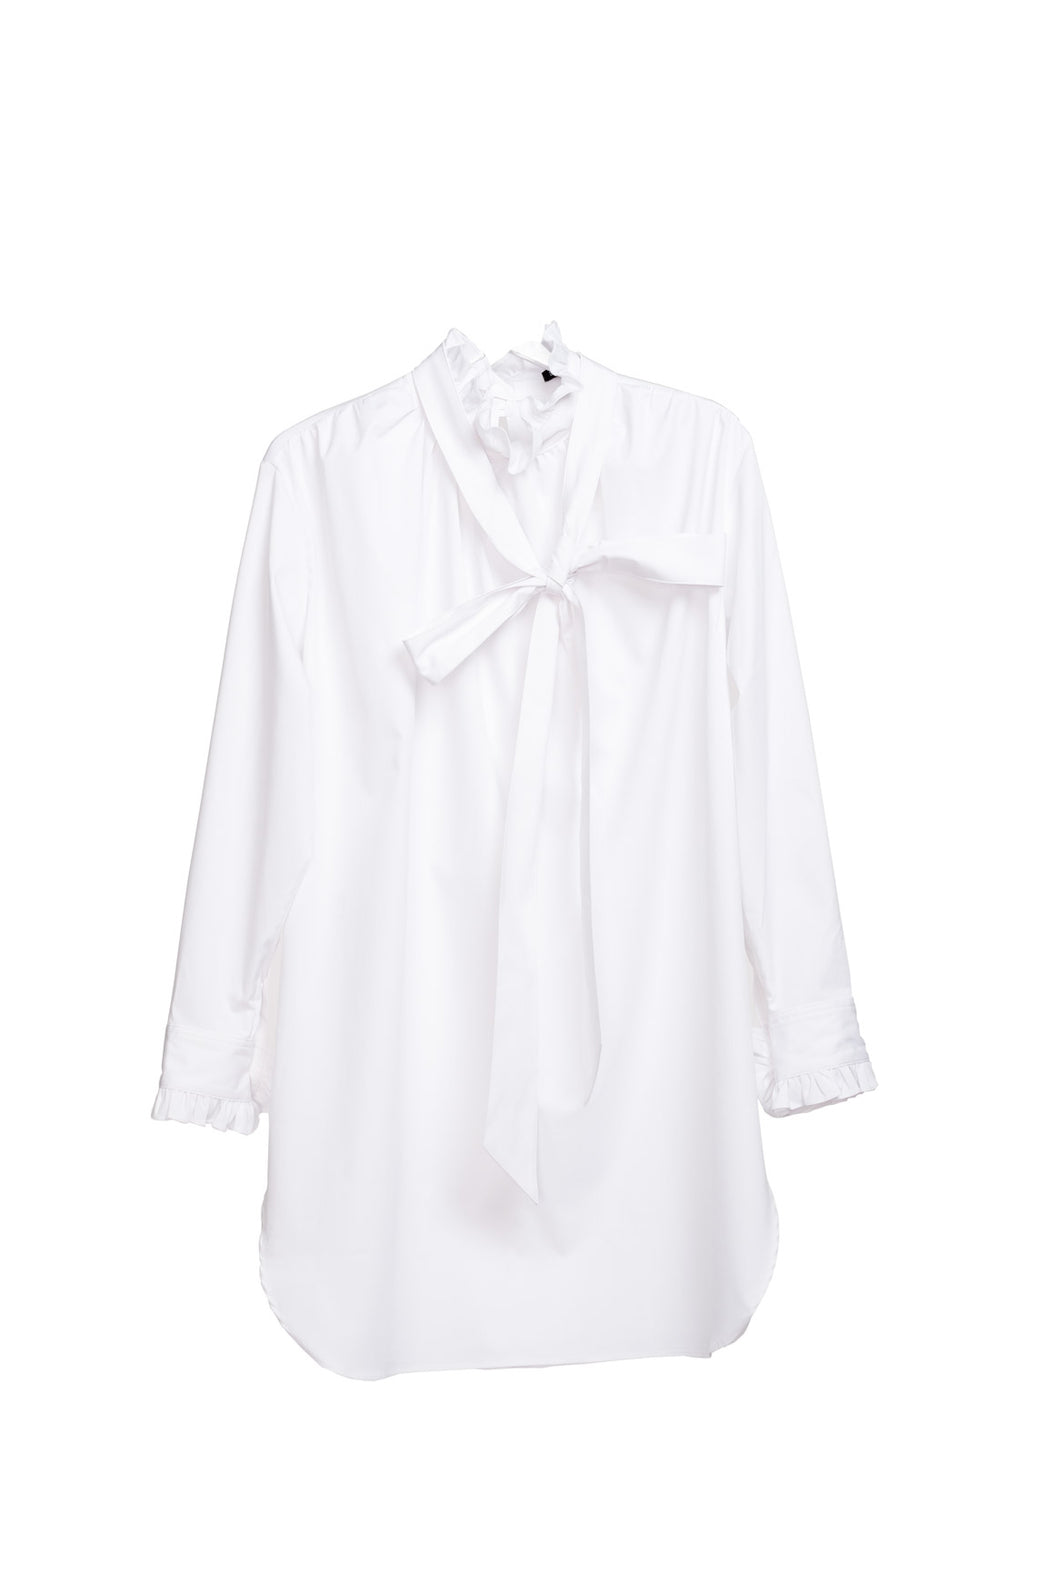 Neck And Cuff Frill Detail Shirt - White